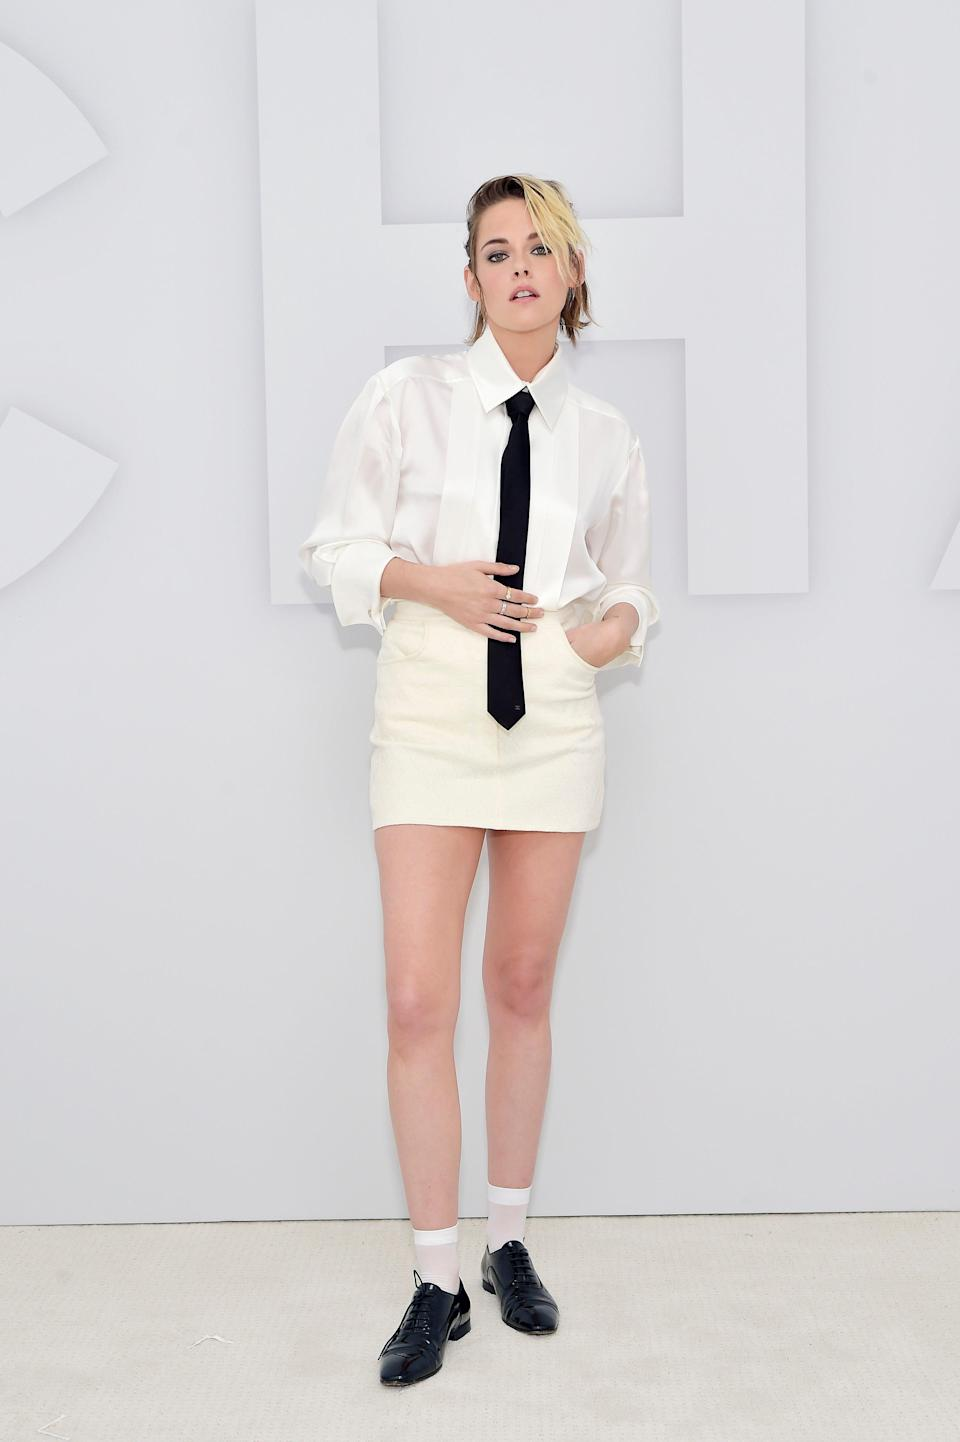 <h2>Kristen Stewart, Chanel</h2><br>Like Robbie, Kristen Stewart also got dressed up to pose as if she was actually at the Chanel show in this back-to-school inspired look.